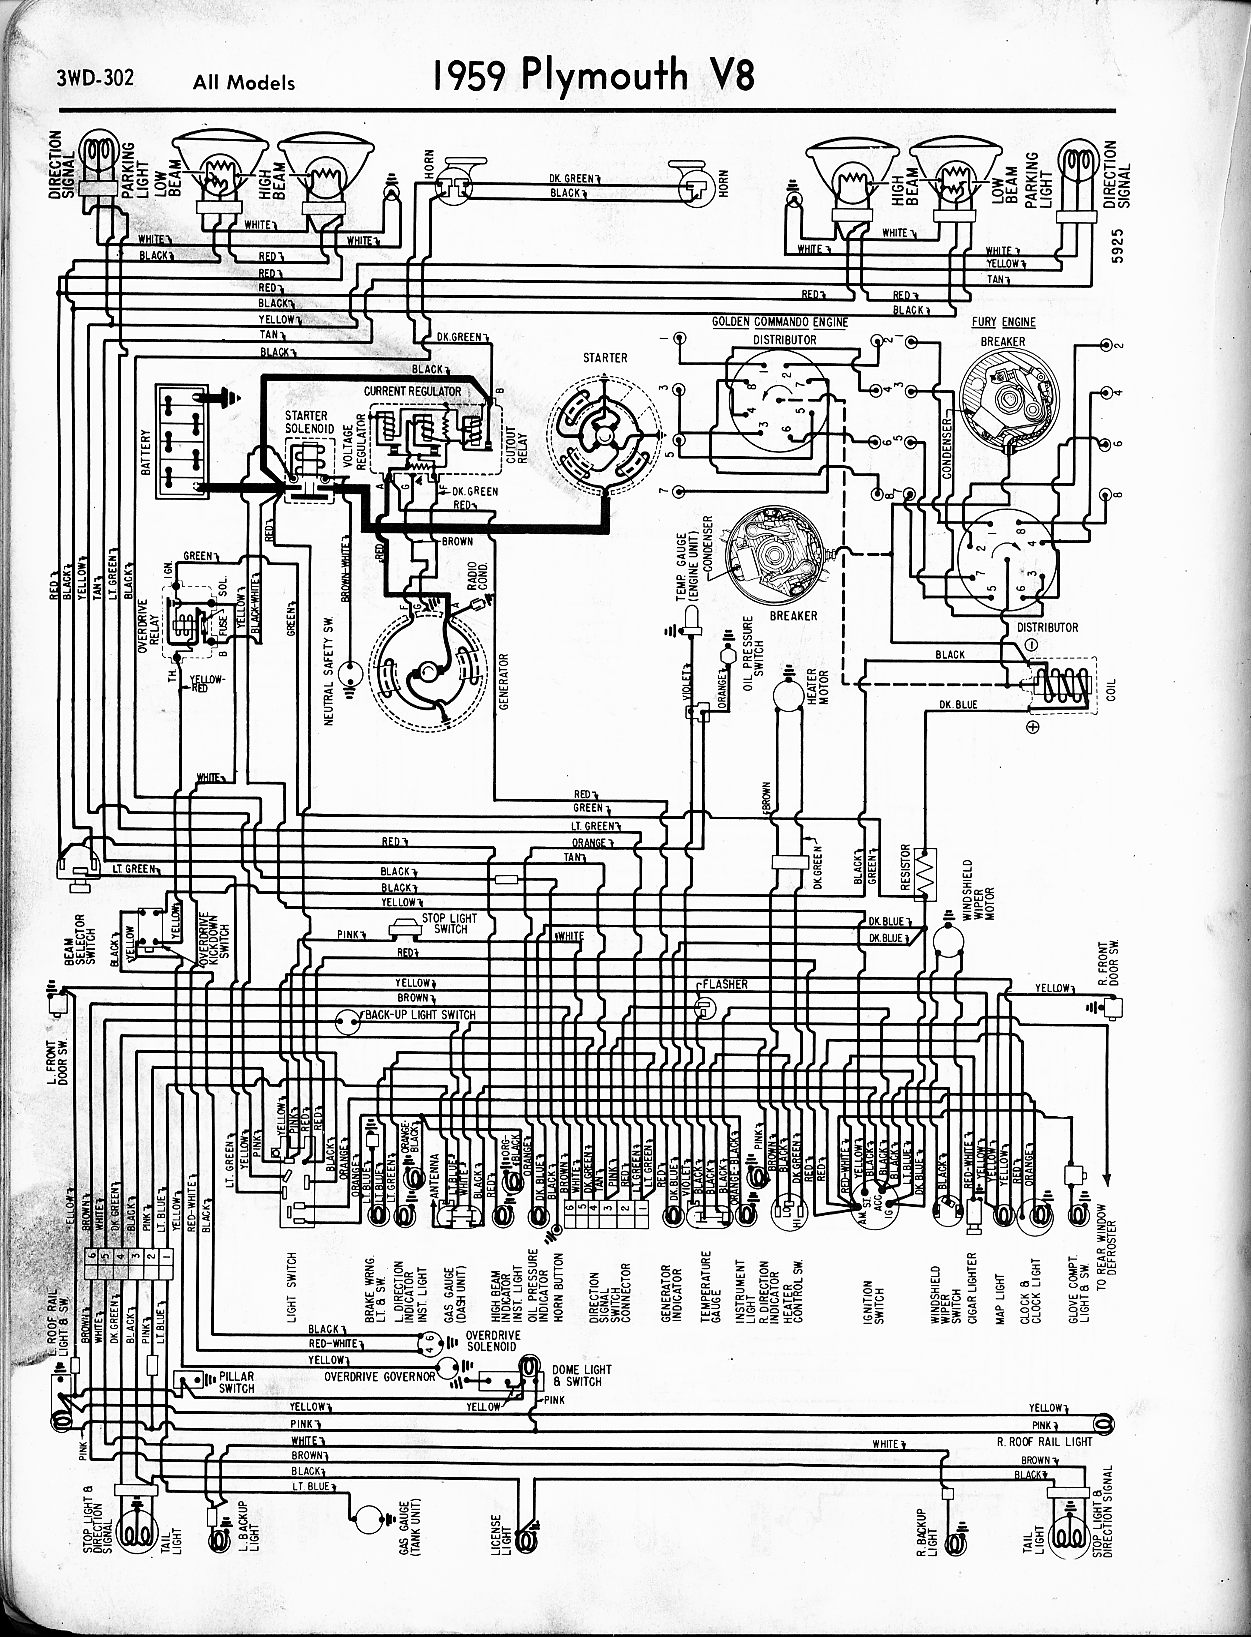 DIAGRAM 1966 Plymouth Wiring Diagram FULL Version HD ...